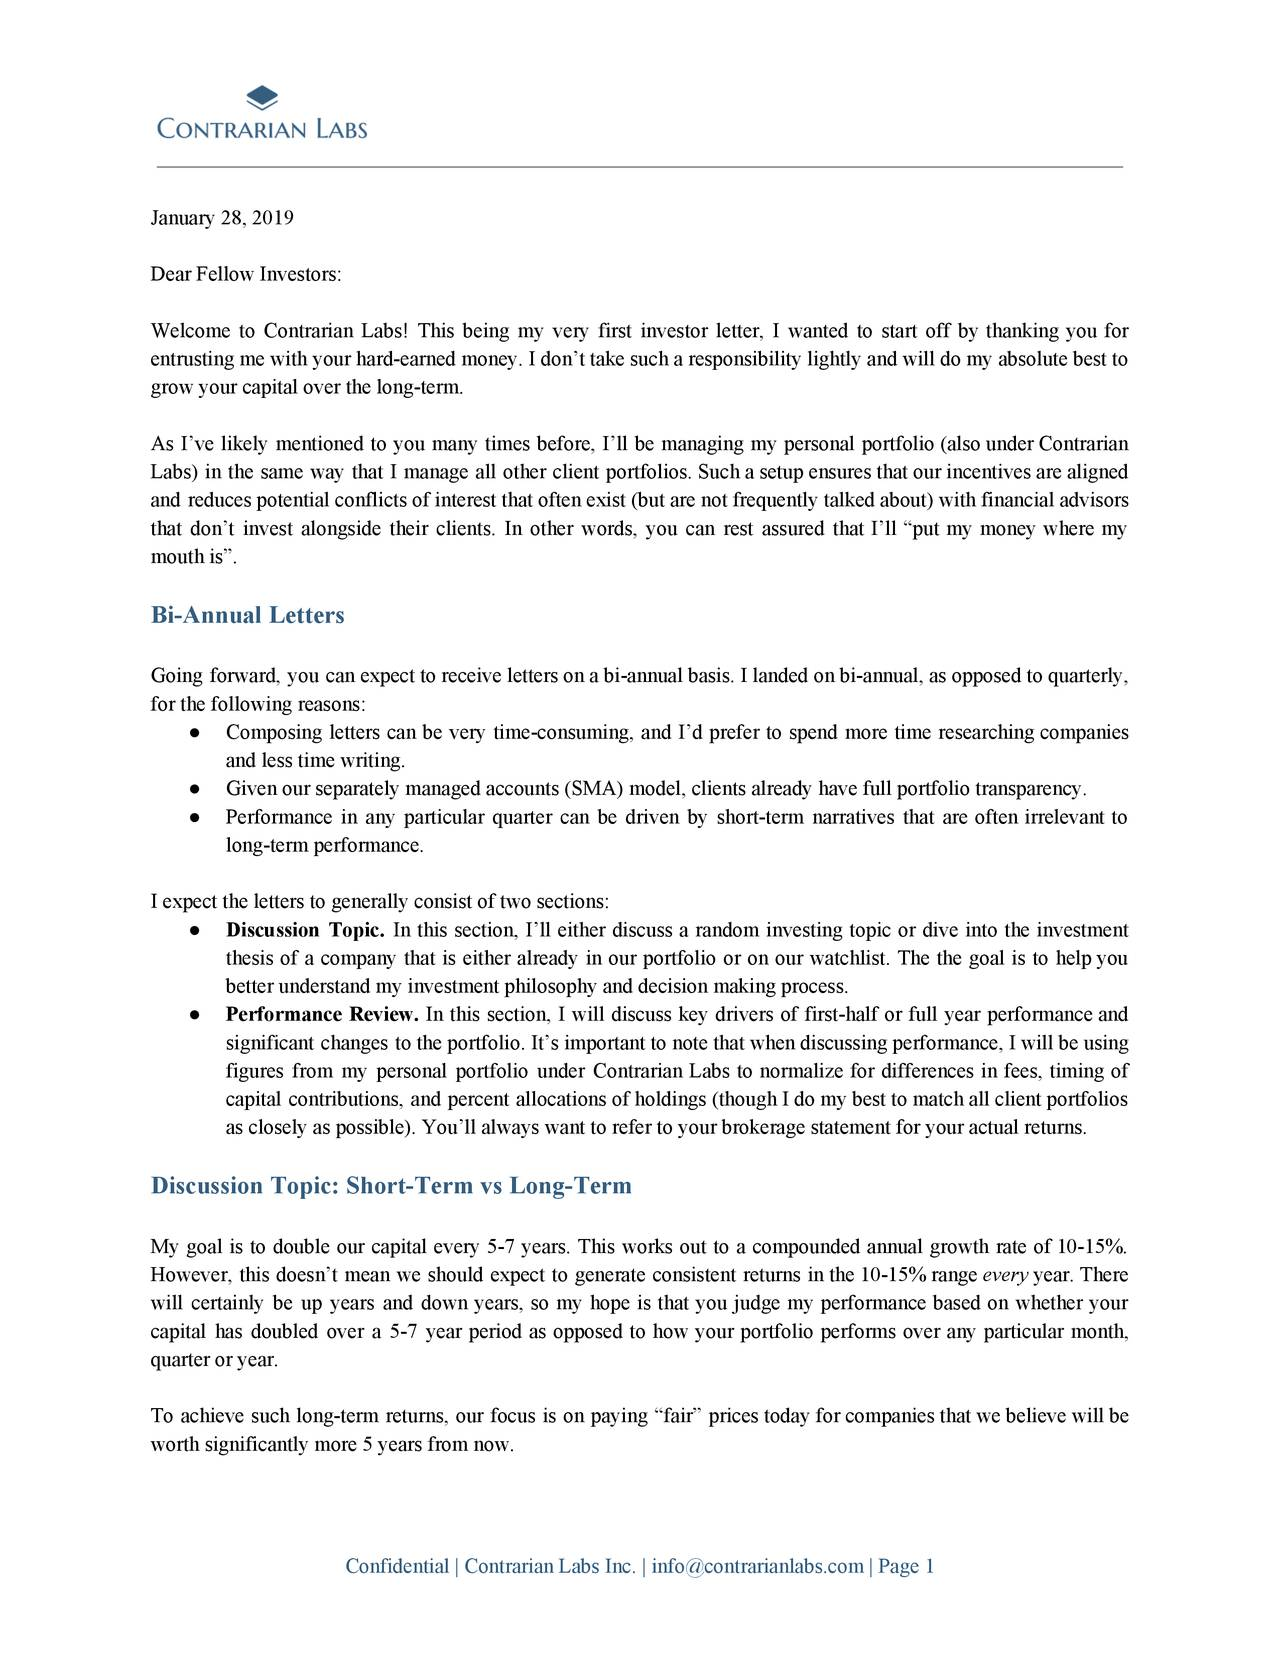 """Dear Fellow Investors: Welcome to Contrarian Labs! This being my very first investor letter, I wanted to start off by thanking you for entrusting me with your hard-earned money. I don't take such a responsibility lightly and will do my absolute best to grow your capital over the long-term. As I've likely mentioned to you many times before, I'll be managing my personal portfolio (also under Contrarian Labs) in the same way that I manage all other client portfolios. Such a setup ensures that our incentives are aligned and reduces potential conflicts of interest that often exist (but are not frequently talked about) with financial advisors that don't invest alongside their clients. In other words, you can rest assured that I'll """"put my money where my mouth is"""". Bi-Annual Letters Going forward, you can expect to receive letters on a bi-annual basis. I landed on bi-annual, as opposed to quarterly, for the following reasons: ● Composing letters can be very time-consuming, and I'd prefer to spend more time researching companies and less time writing. ● Given our separately managed accounts (SMA) model, clients already have full portfolio transparency. ● Performance in any particular quarter can be driven by short-term narratives that are often irrelevant to long-term performance. I expect the letters to generally consist of two sections: ● Discussion Topic. In this section, I'll either discuss a random investing topic or dive into the investment thesis of a company that is either already in our portfolio or on our watchlist. The the goal is to help you better understand my investment philosophy and decision making process. ● Performance Review. In this section, I will discuss key drivers of first-half or full year performance and significant changes to the portfolio. It's important to note that when discussing performance, I will be using figures from my personal portfolio under Contrarian Labs to normalize for differences in fees, timing of capital contributions, and perc"""